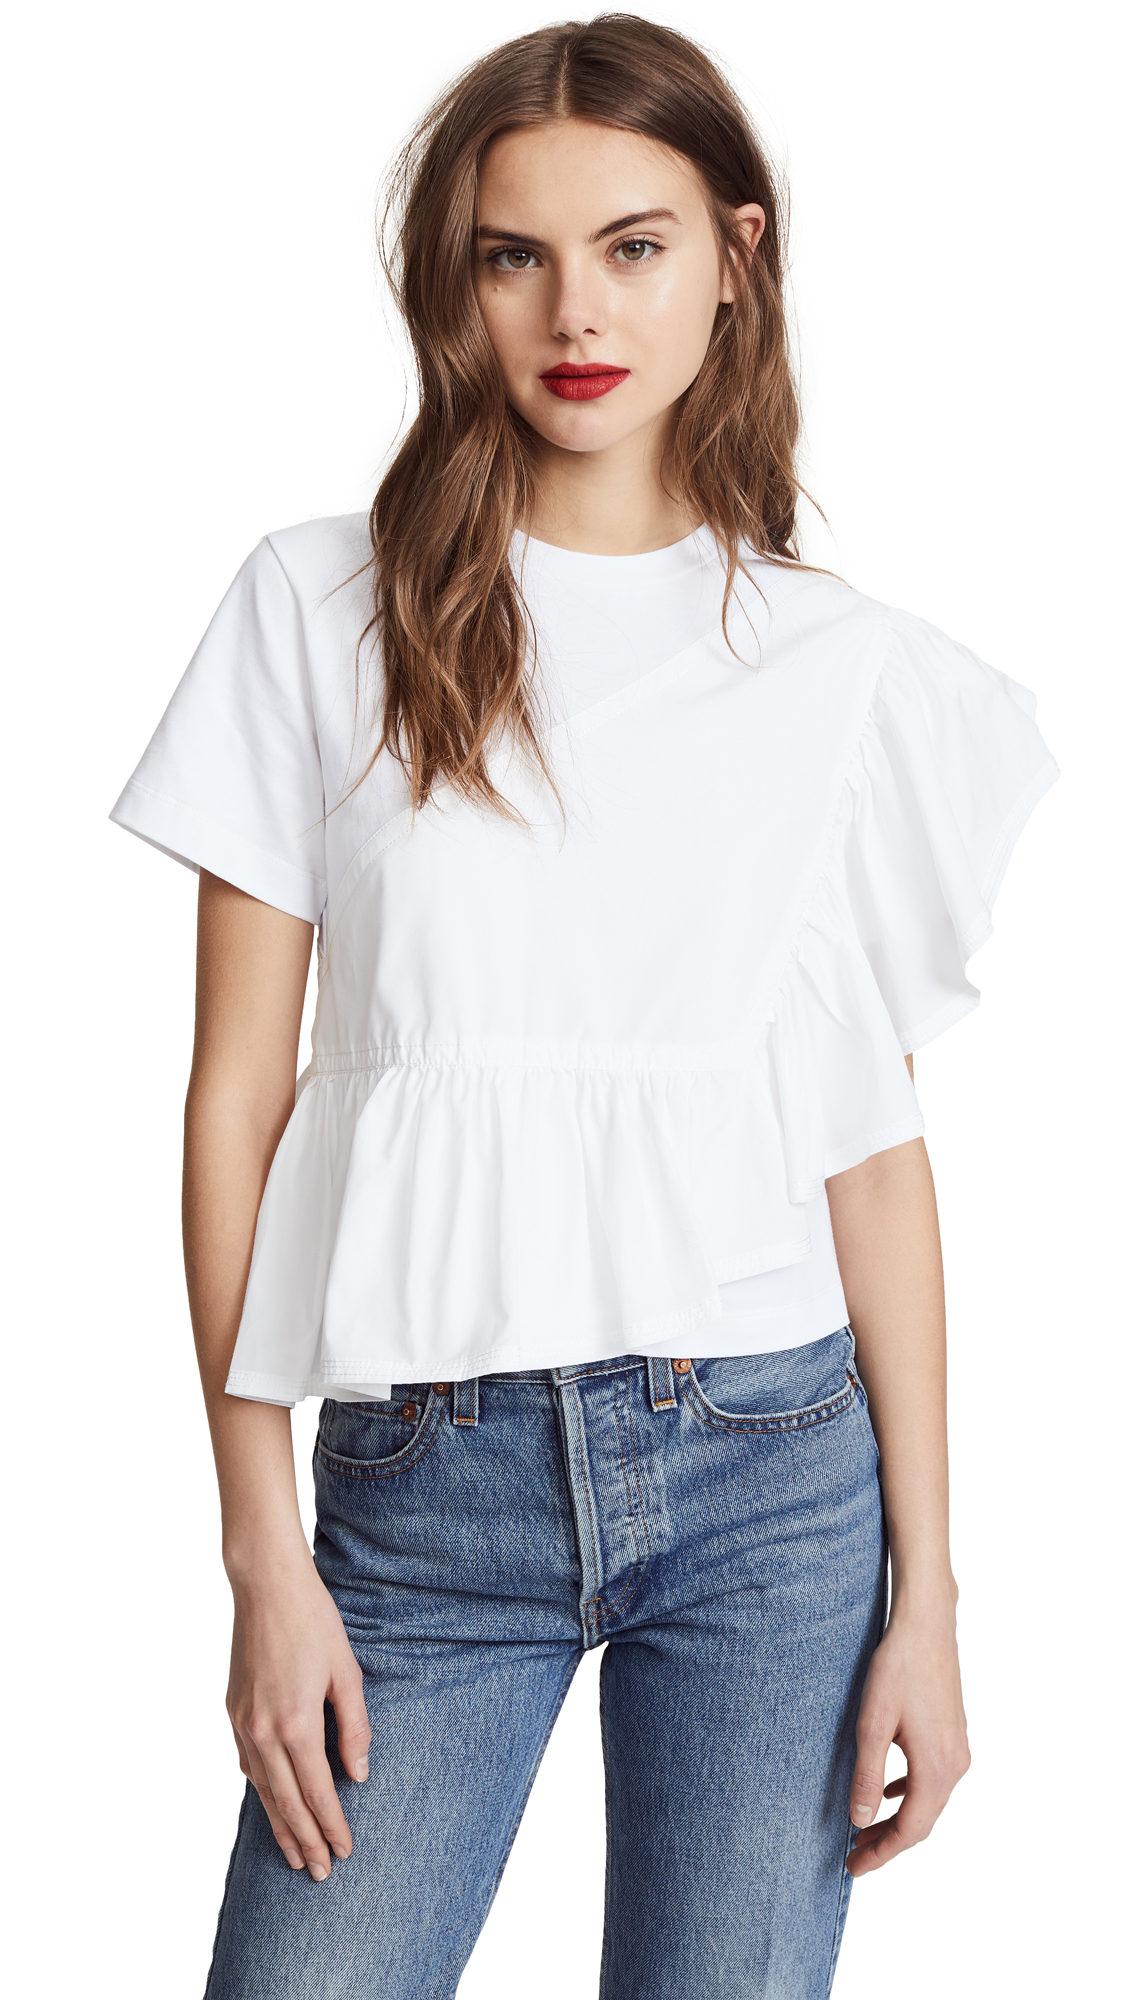 3.1 Phillip Lim Flamenco Tee In White  c6b5f71c0